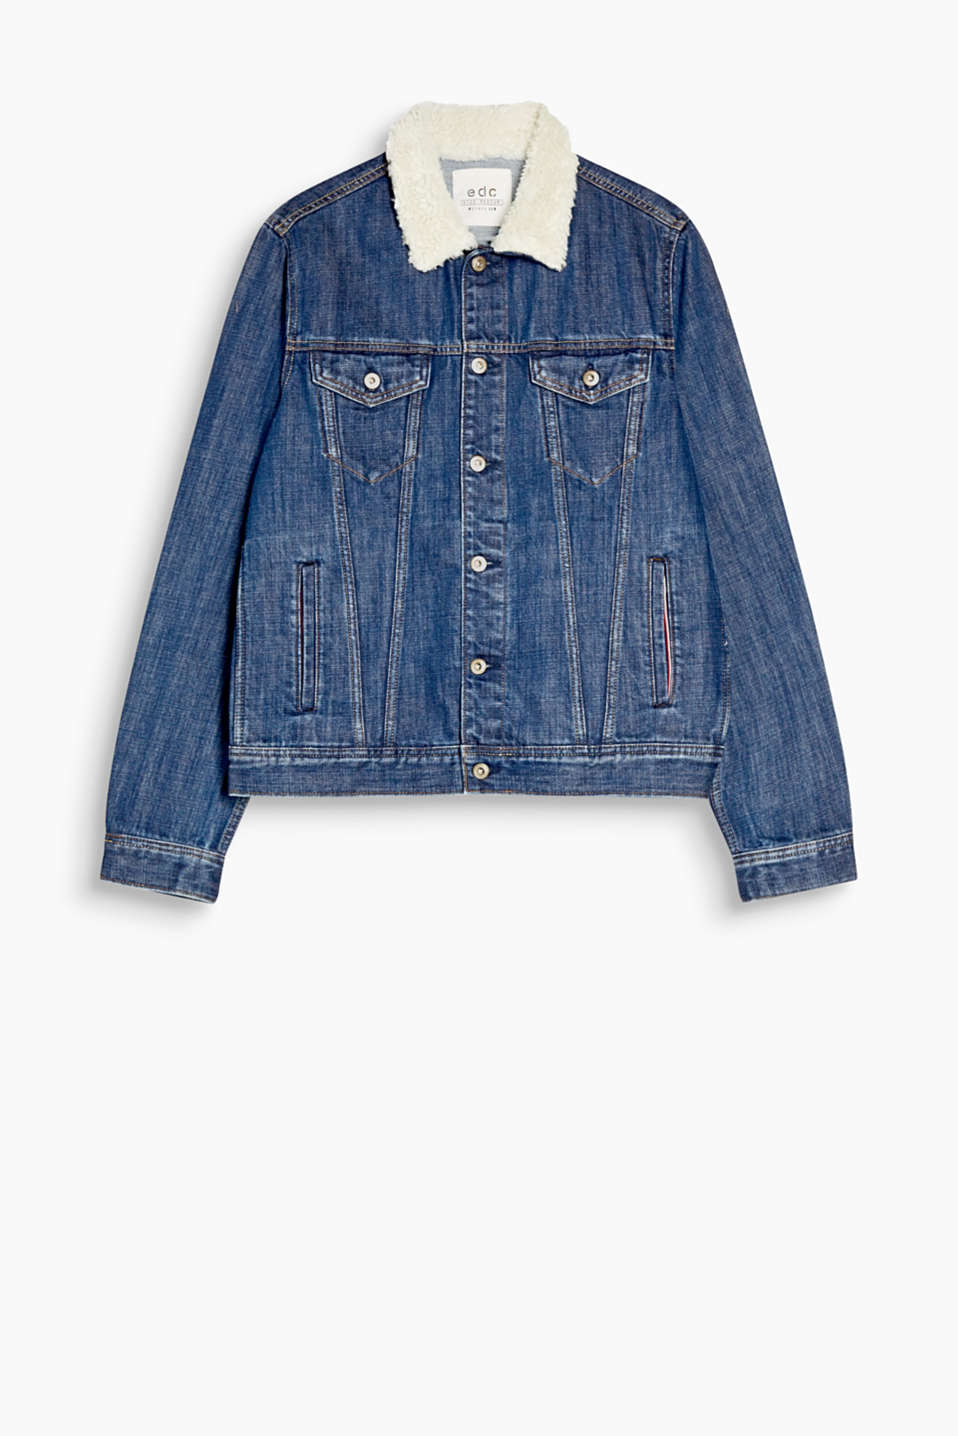 Modern urban style! This denim jacket impresses with its striking collar made of faux shearling.